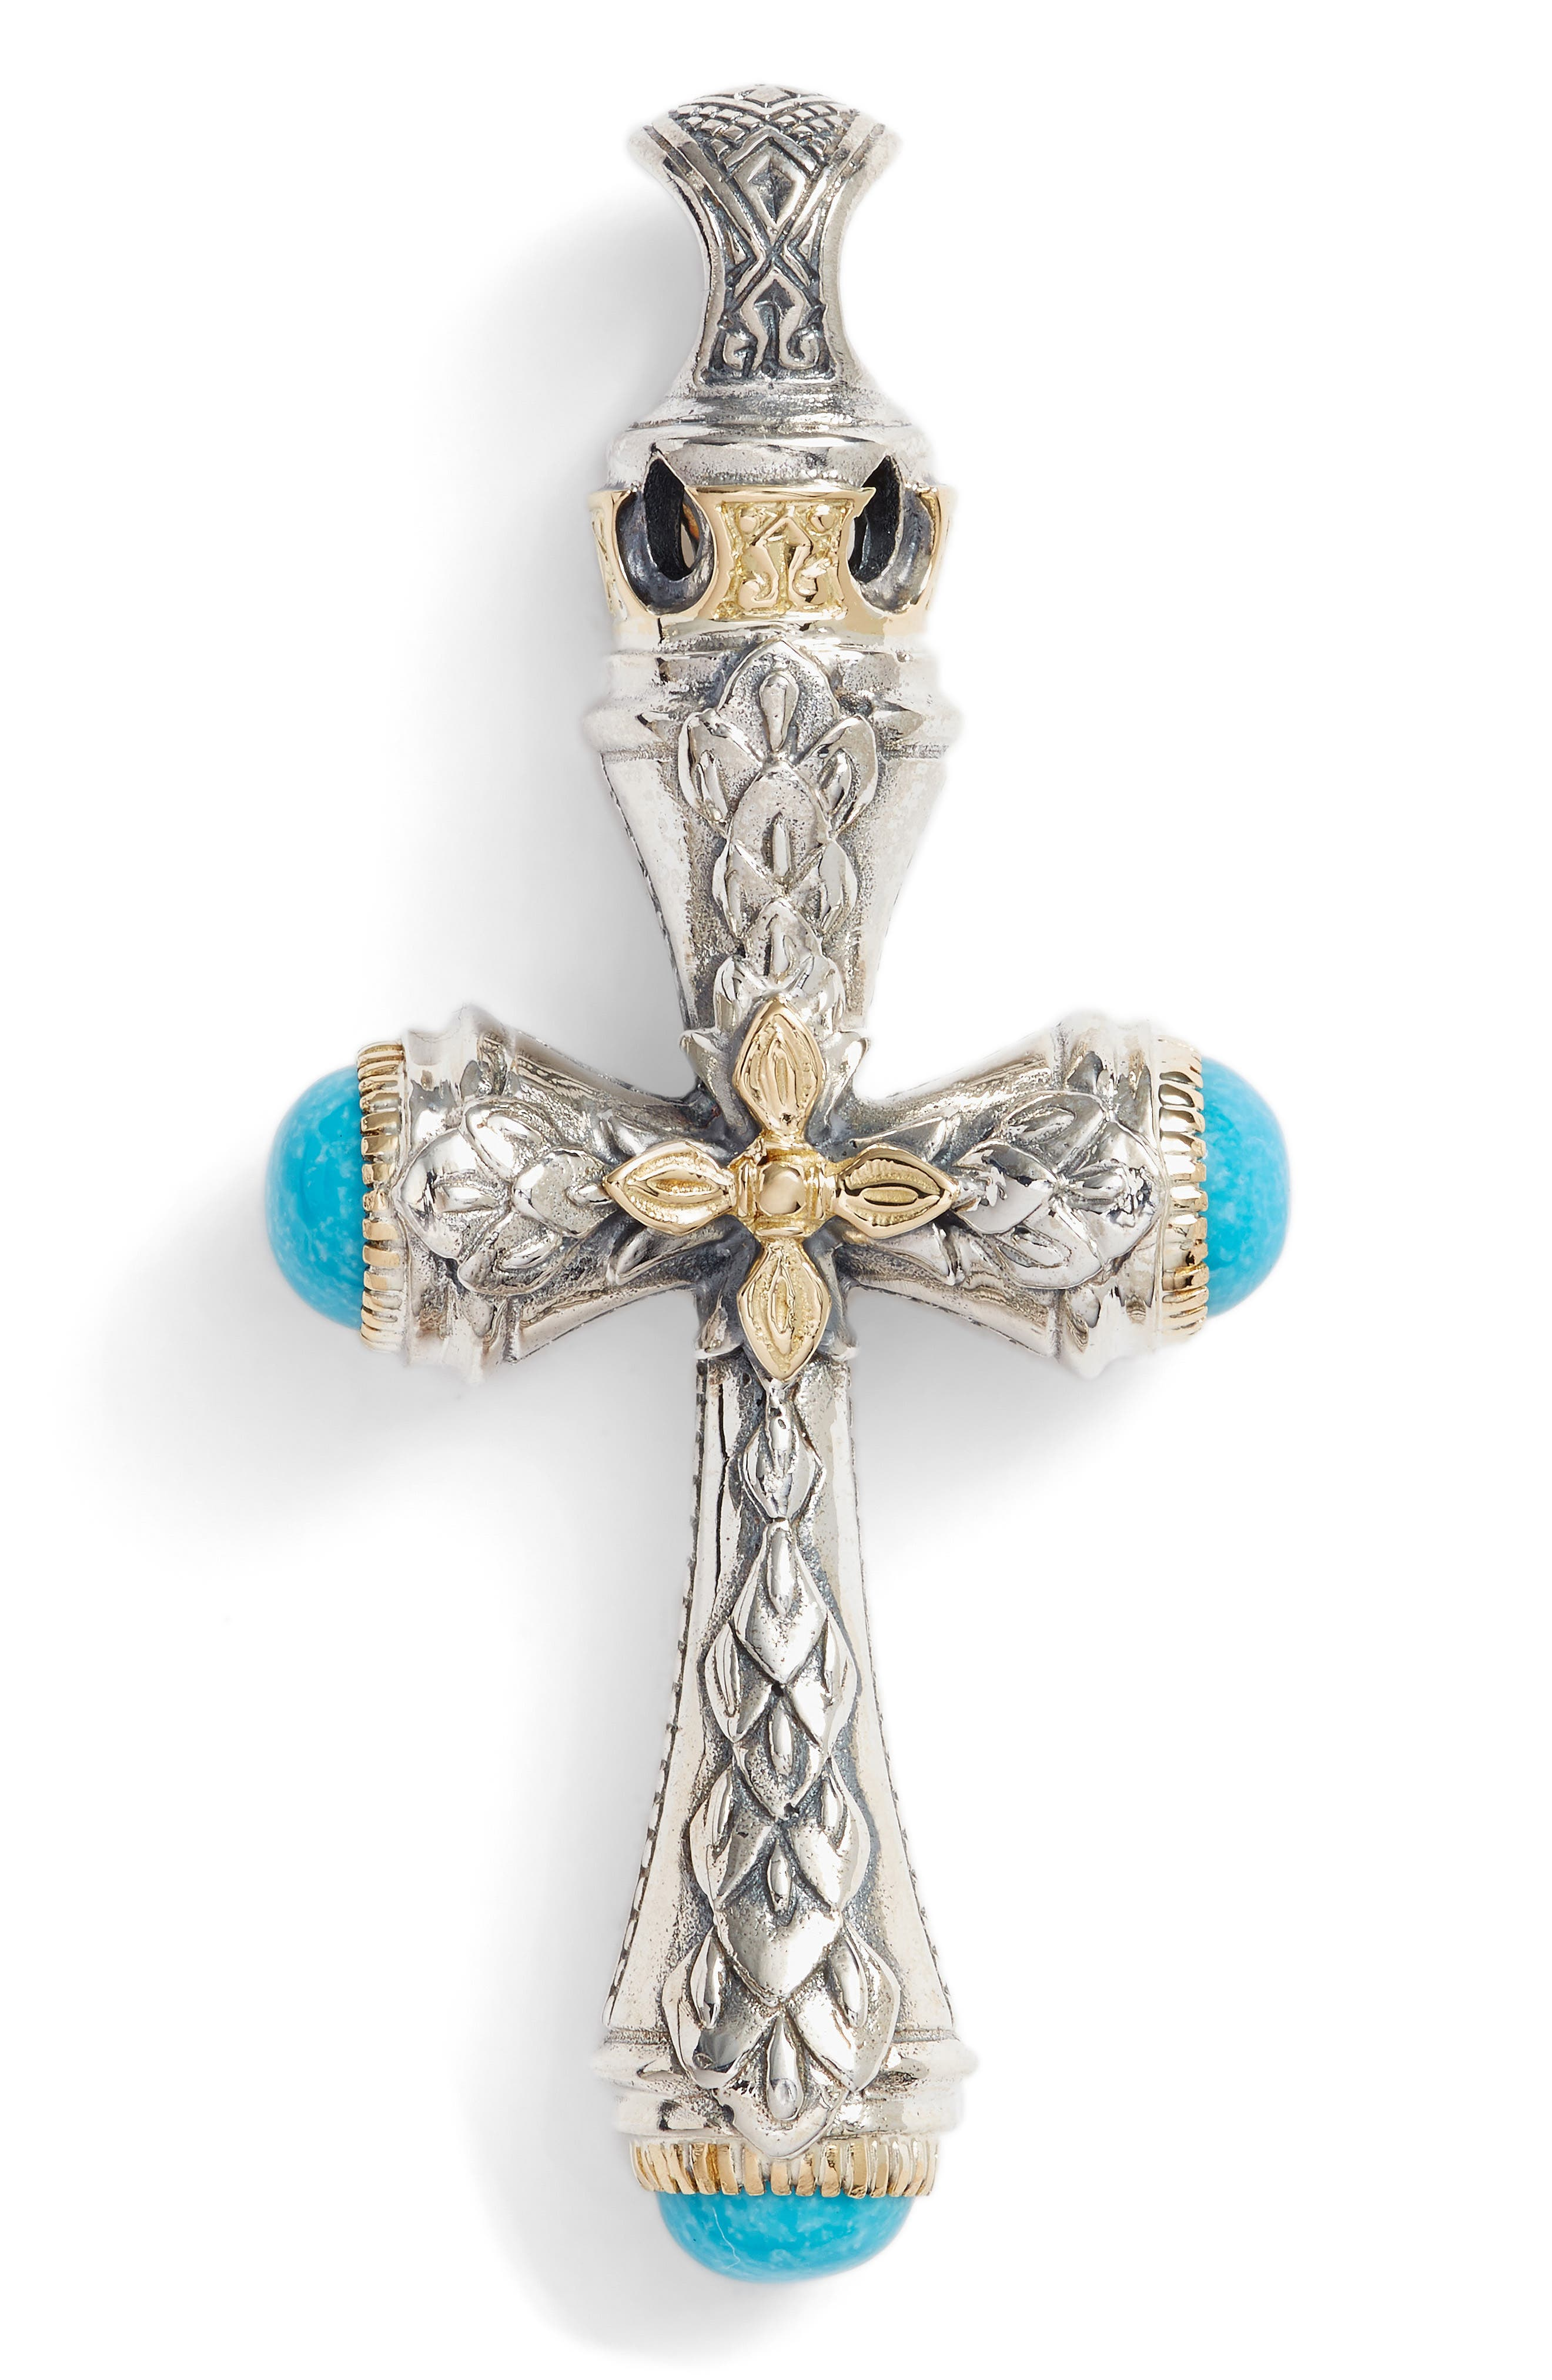 Heonos Turquoise Cross,                             Main thumbnail 1, color,                             SILVER/ GOLD/ TURQUOISE